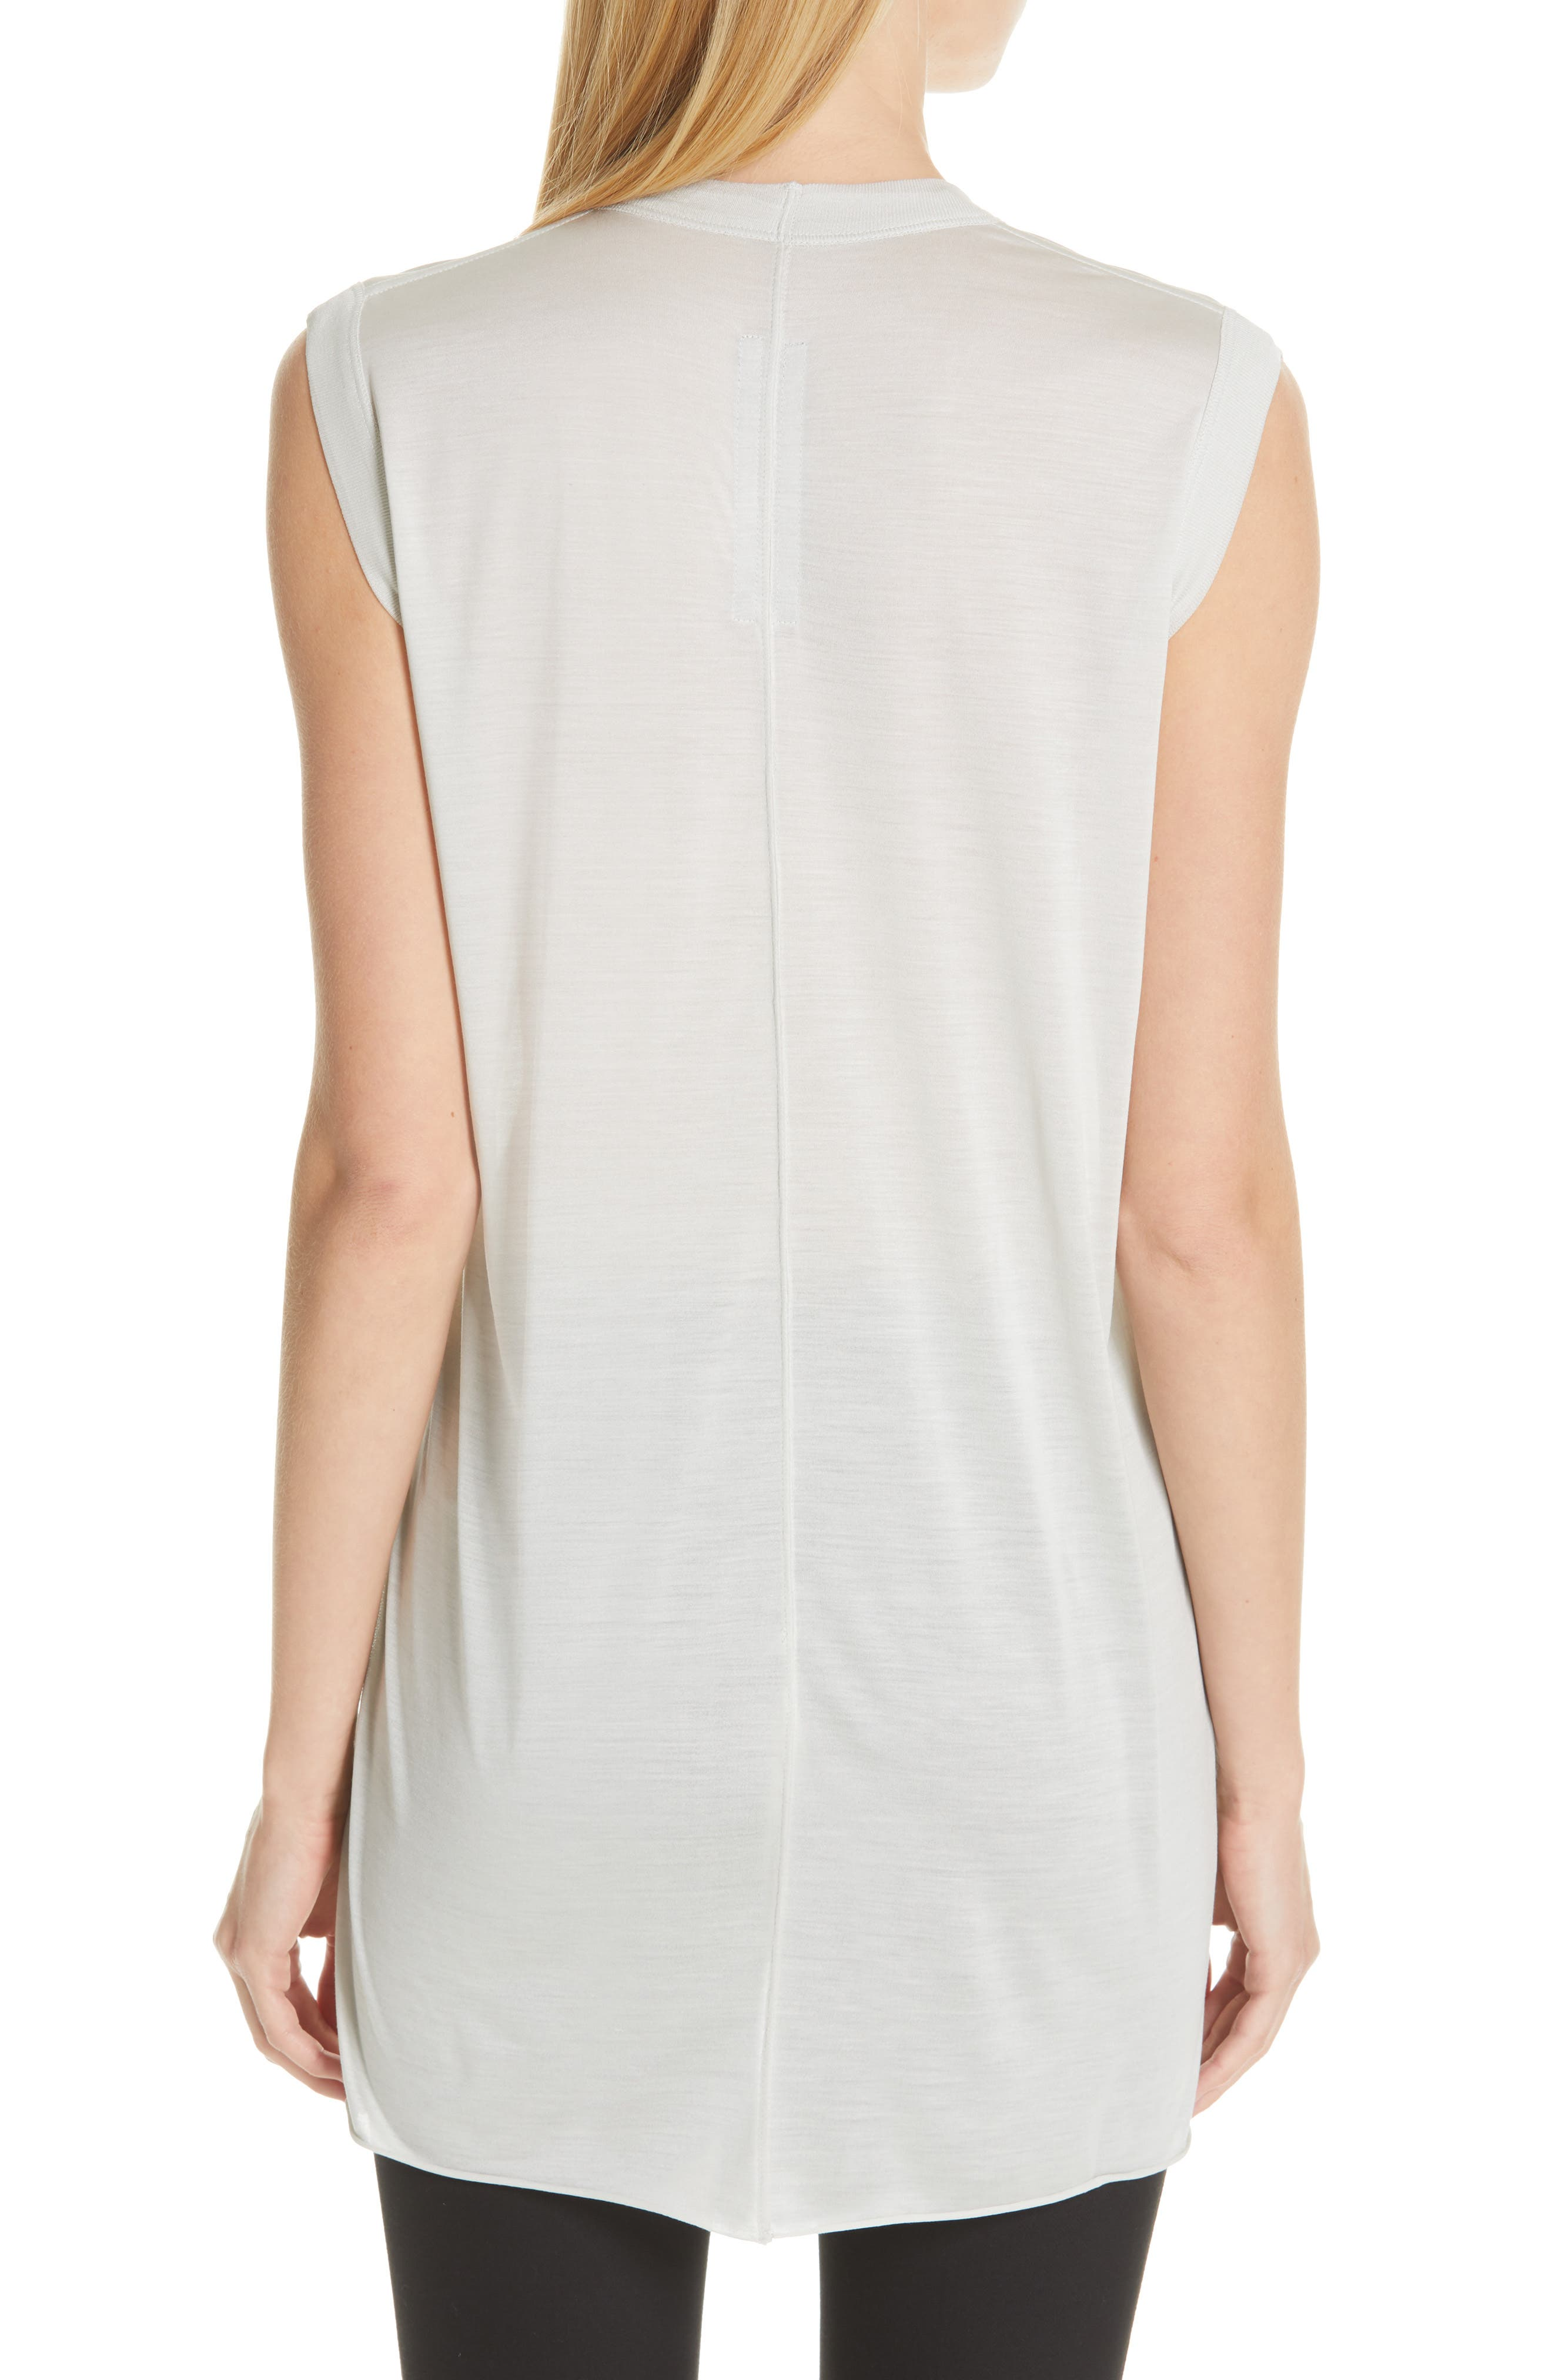 RICK OWENS,                             Silk Jersey Tee,                             Alternate thumbnail 2, color,                             OYSTER